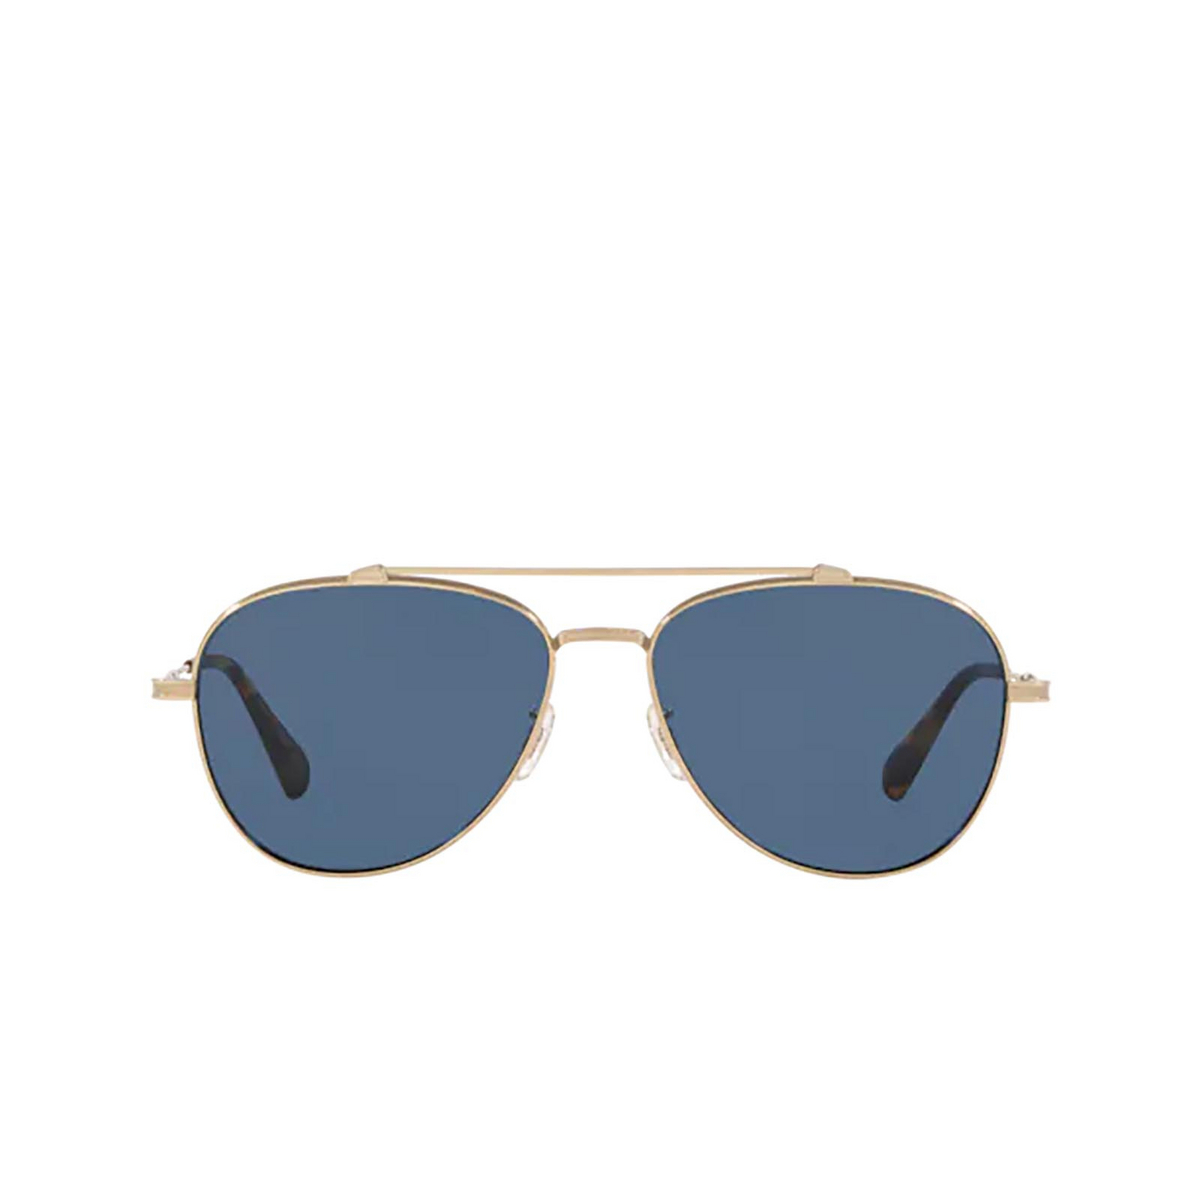 Oliver Peoples® Aviator Sunglasses: Rikson OV1266ST color Soft Gold 503580 - front view.